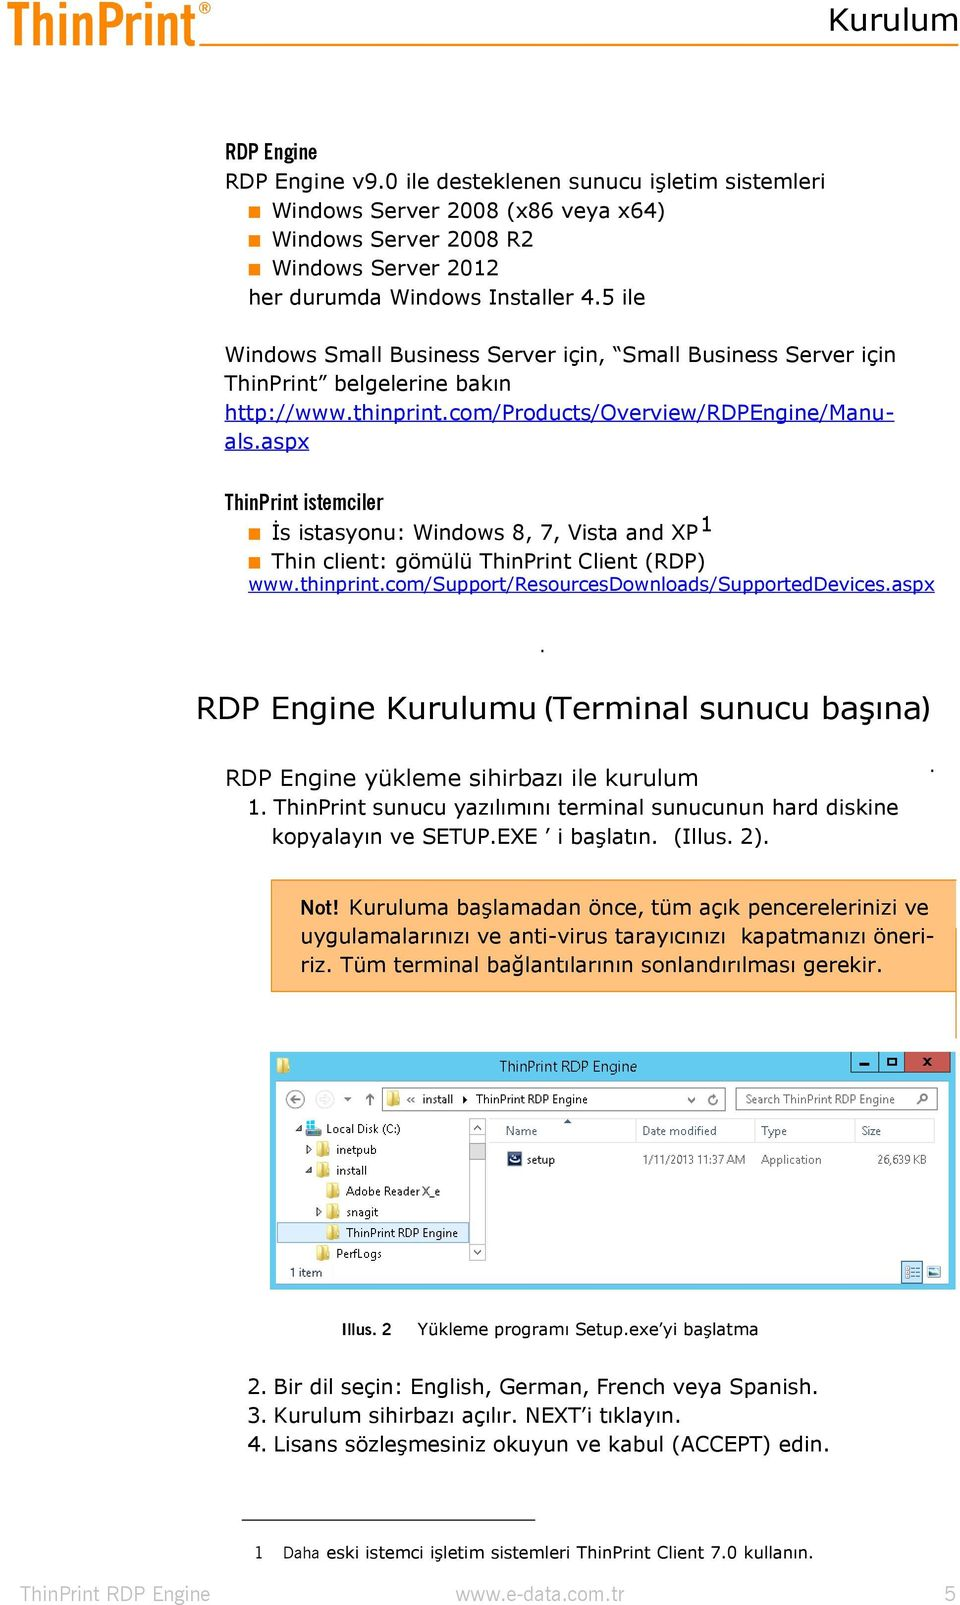 aspx ThinPrint istemciler İs istasyonu: Windows 8, 7, Vista and XP 1 Thin client: gömülü ThinPrint Client (RDP) www.thinprint.com/support/resourcesdownloads/supporteddevices.aspx. RDP Engine Kurulumu (Terminal sunucu başına) RDP Engine yükleme sihirbazı ile kurulum 1.